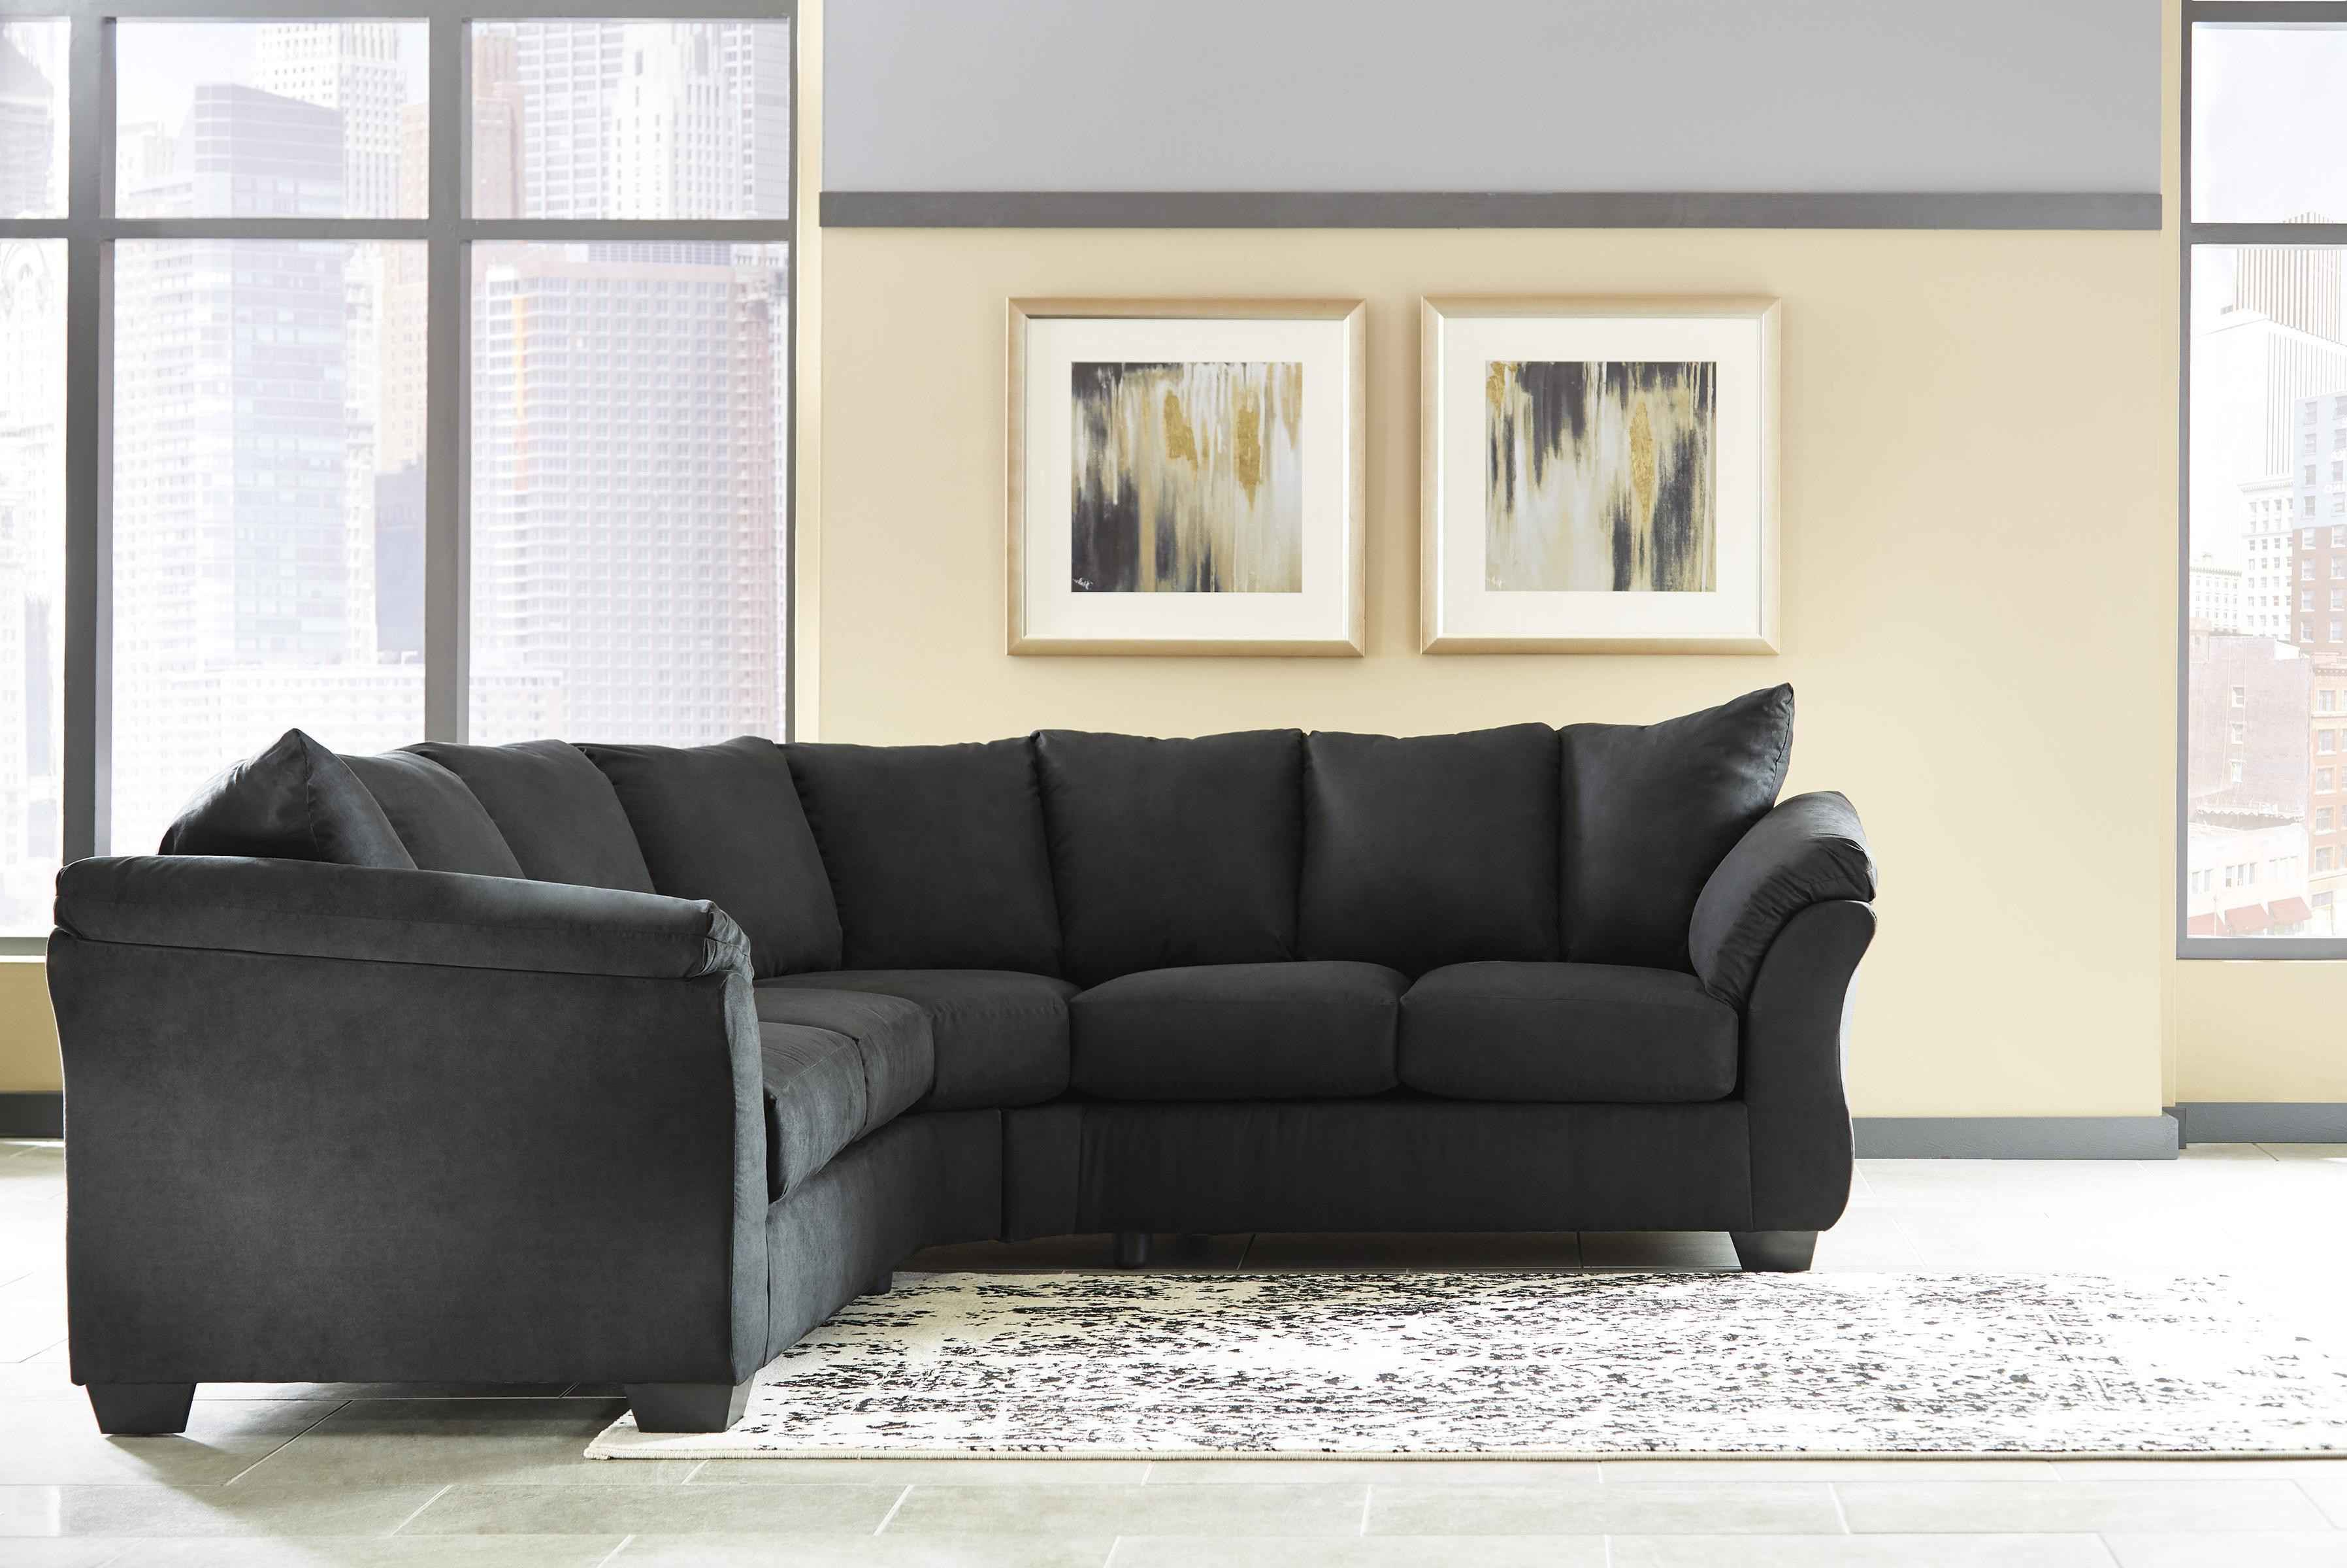 Favorite Arrowmask 2 Piece Sectionals With Laf Chaise Pertaining To 50 Awesome Collection Of Grey Couch With Chaise (Gallery 18 of 20)